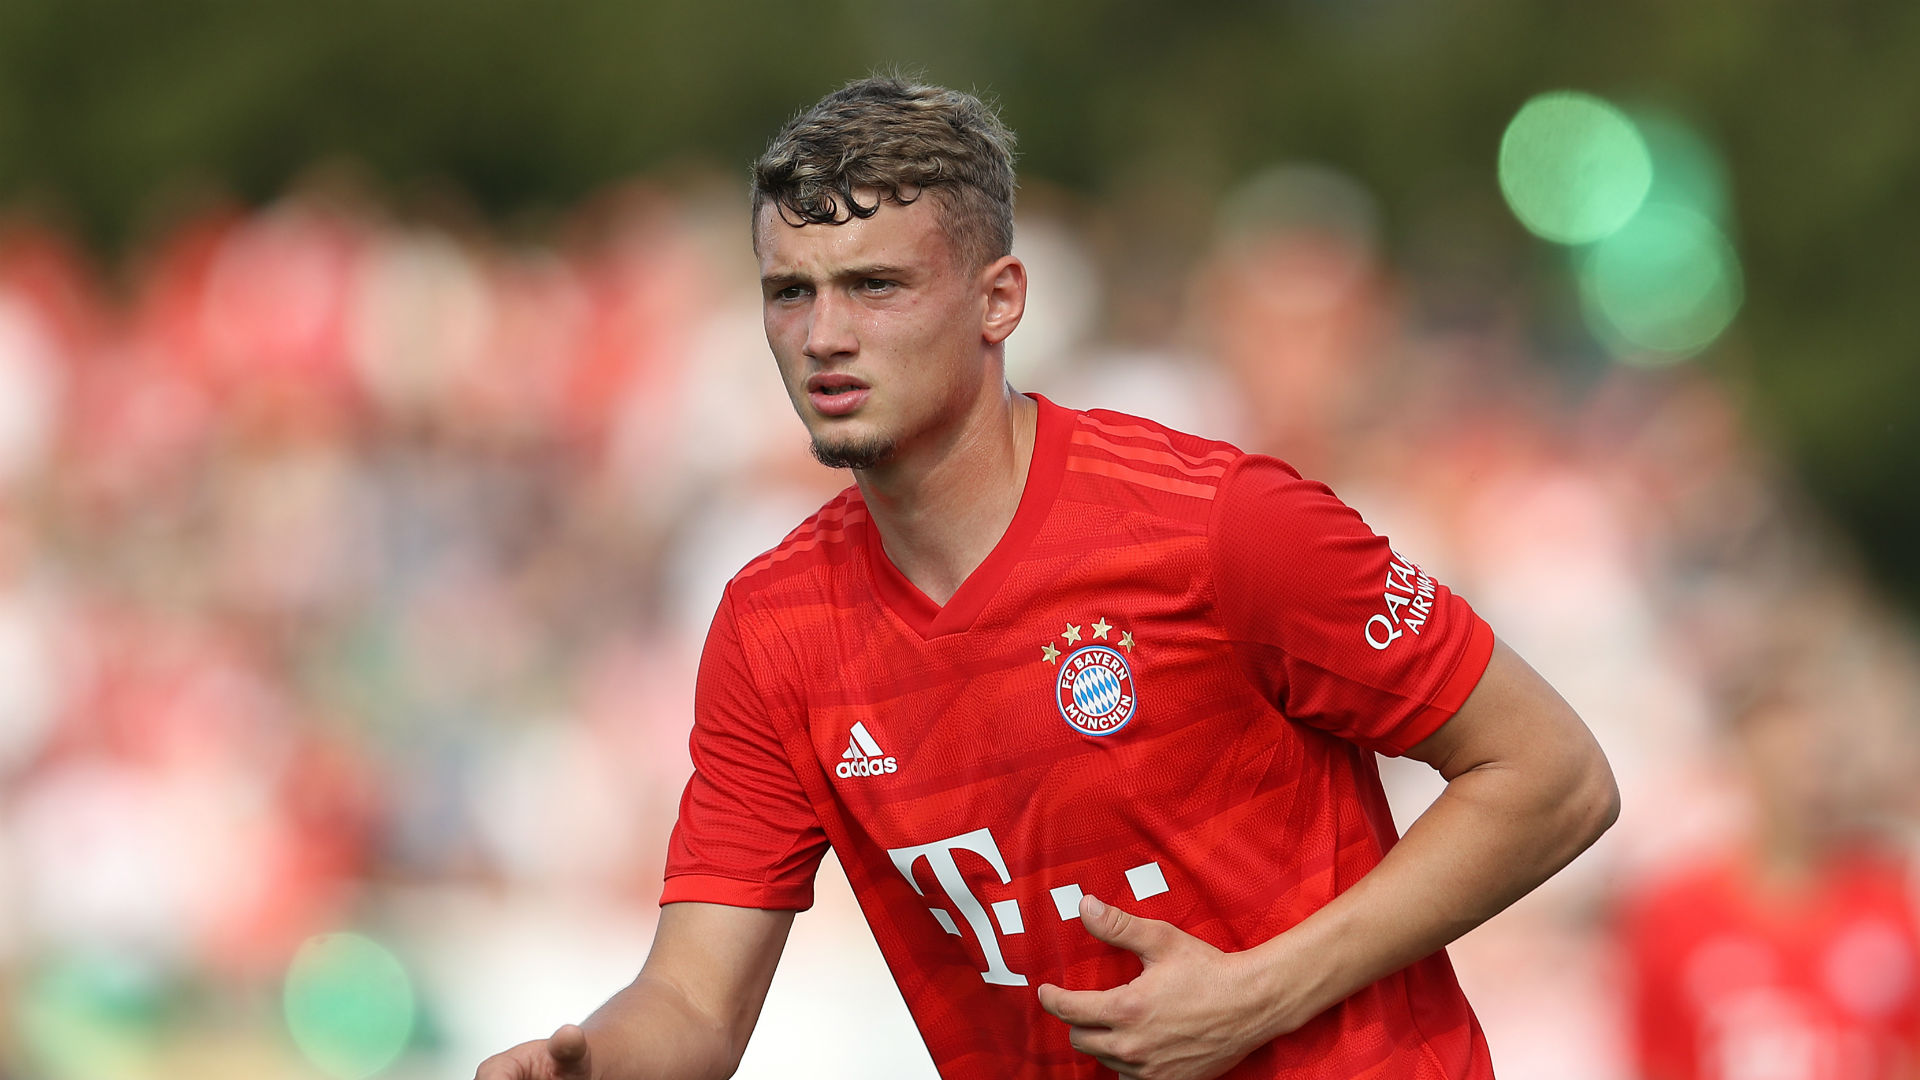 Bayern's Cuisance should have stayed at Gladbach, says Eberl